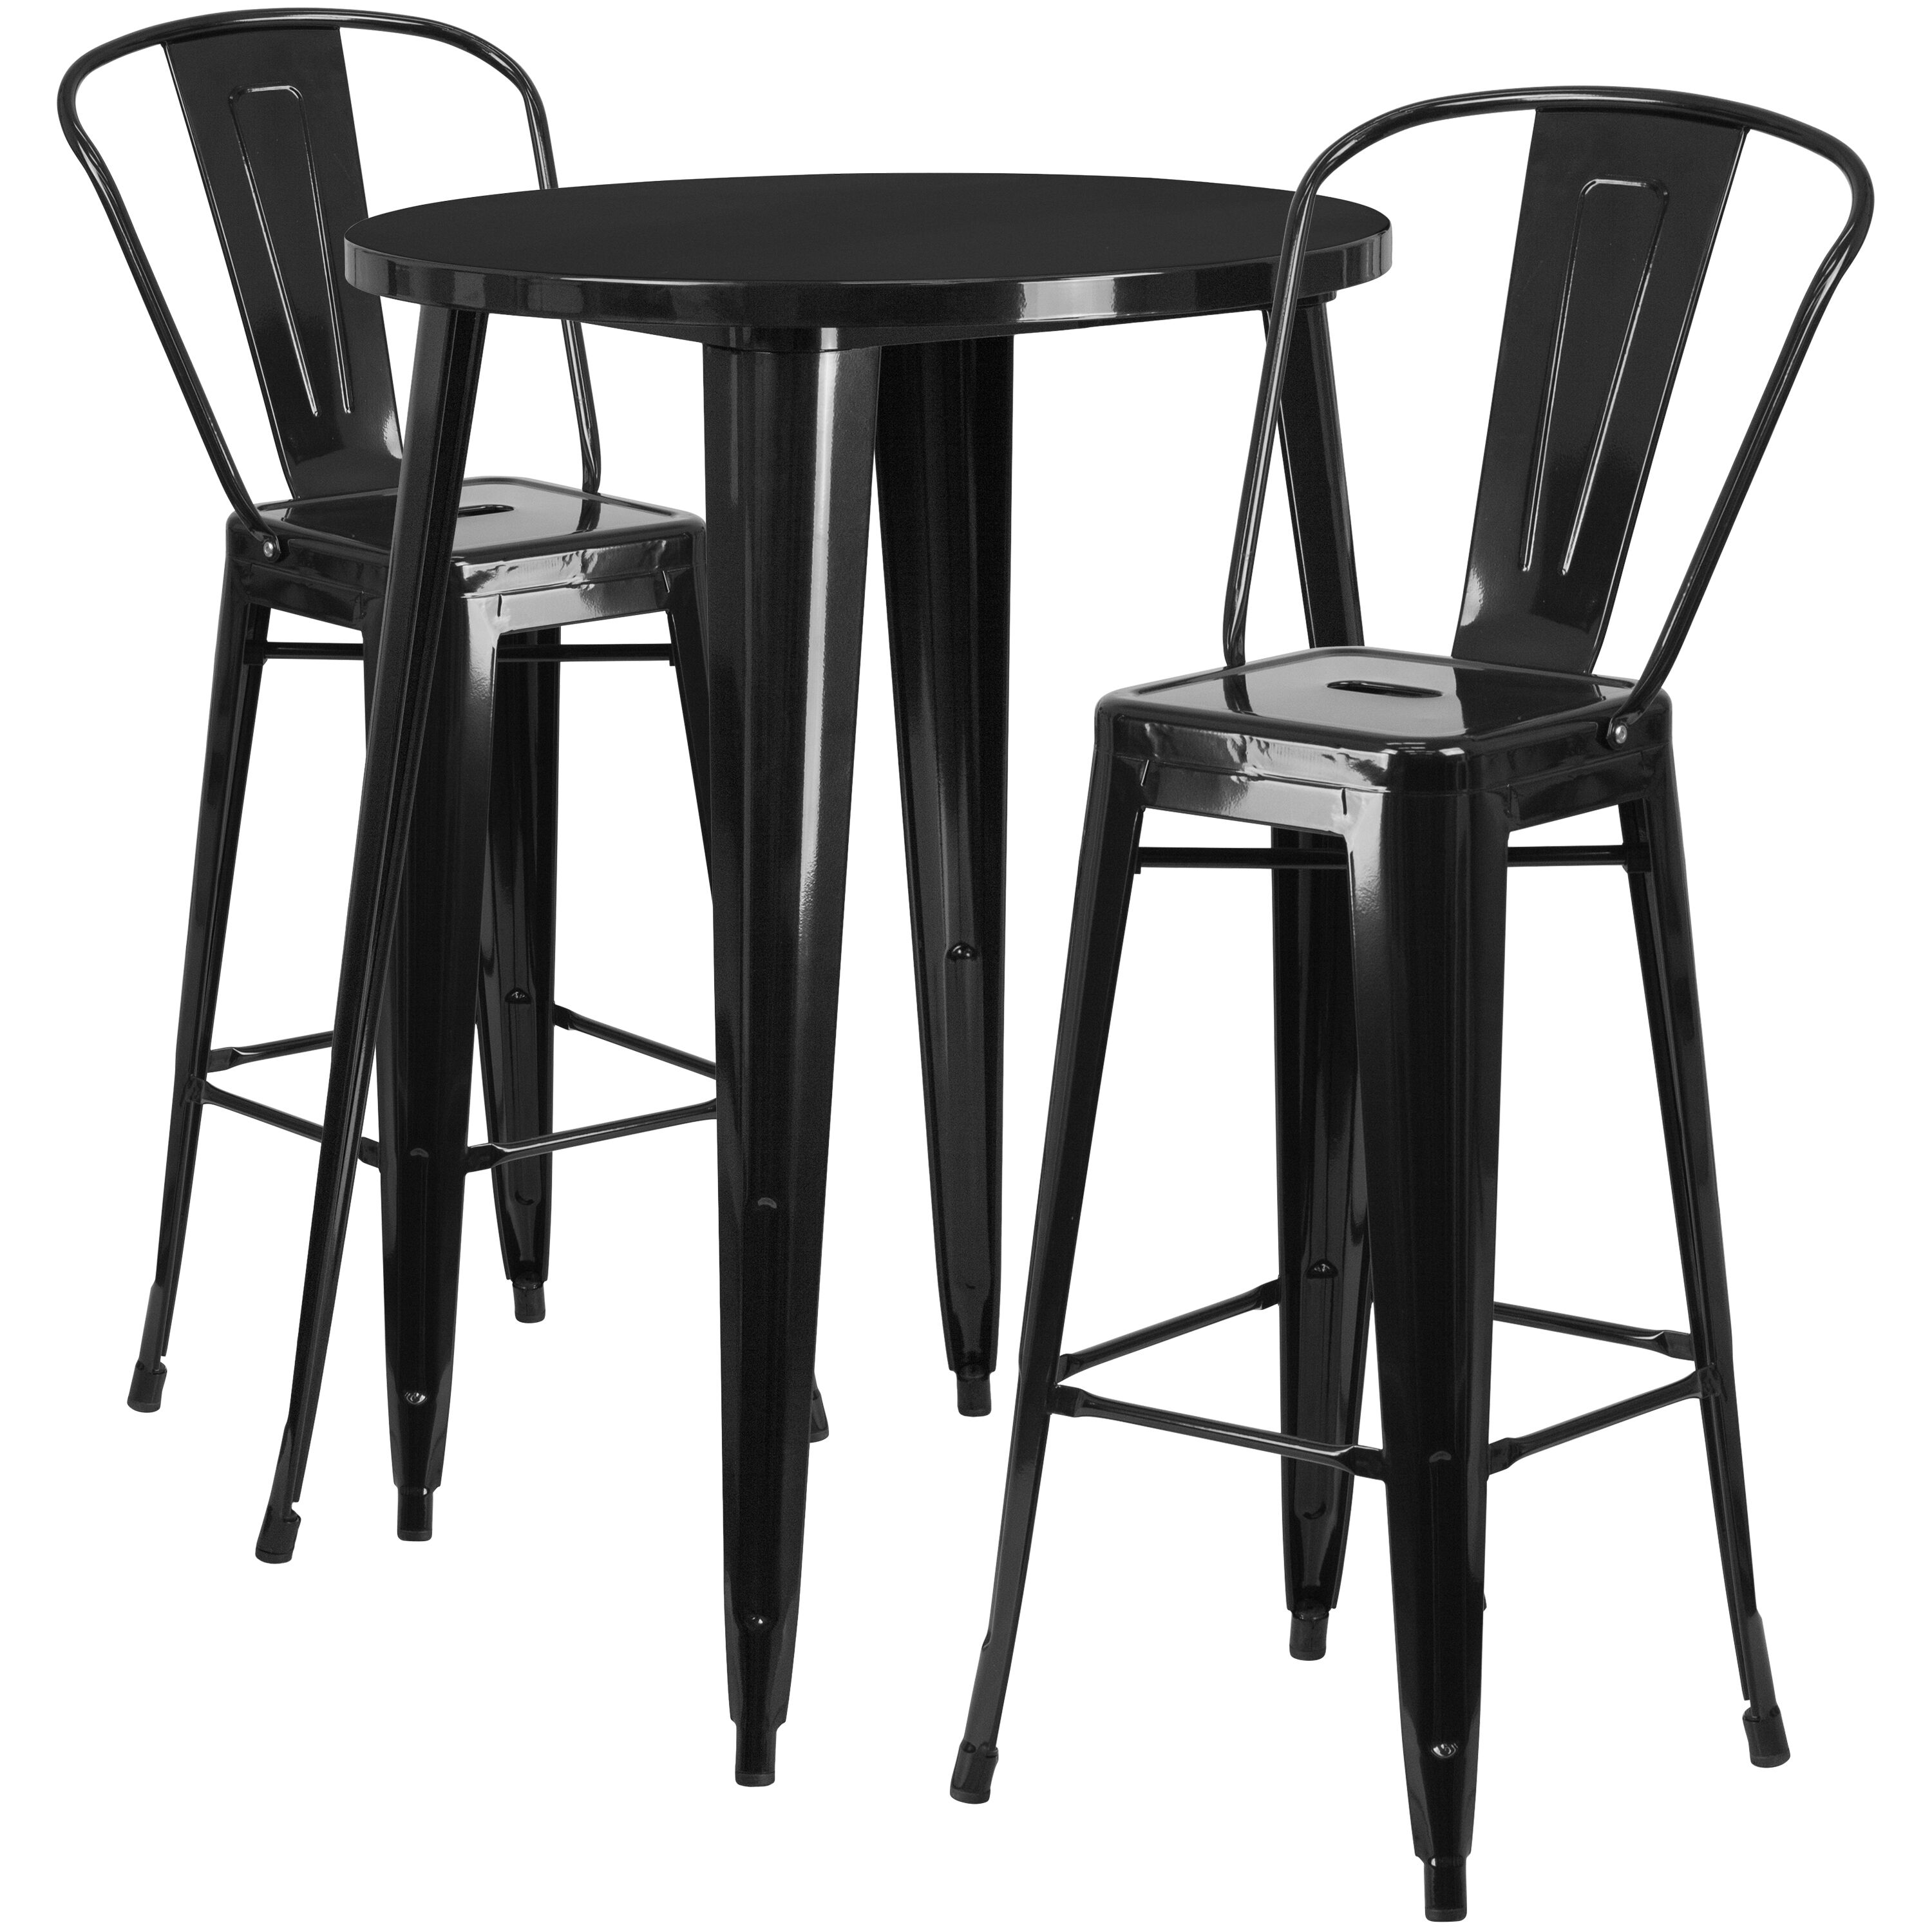 cafe chairs metal chair neck stand 30rd black bar set ch 51090bh 2 30cafe bk gg churchchairs4less com